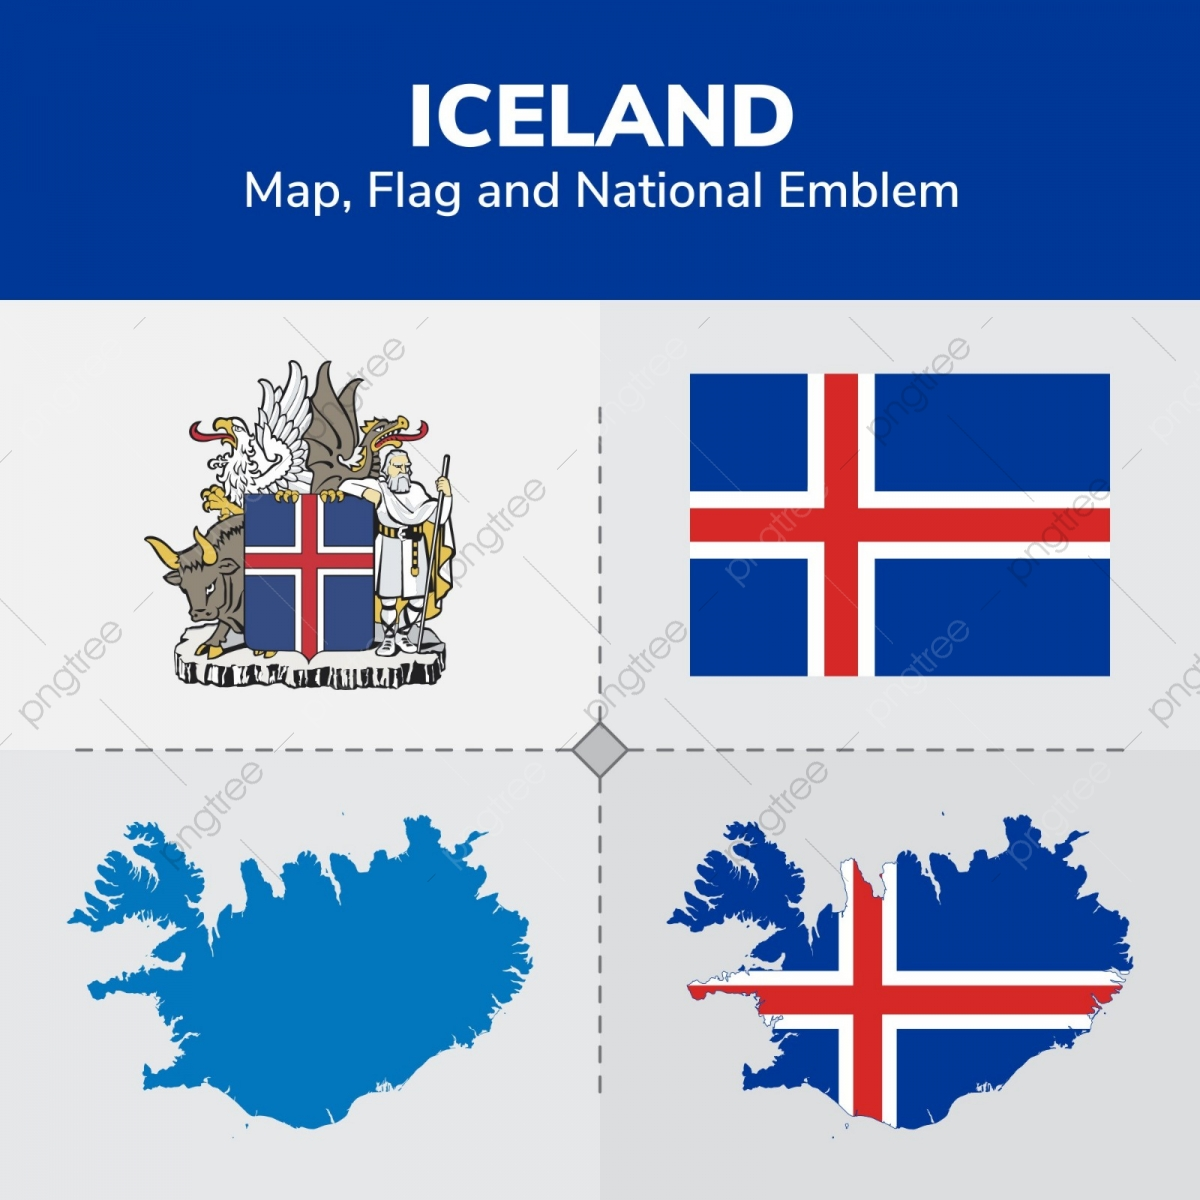 Iceland Map, Flag And National Emblem, Continents, Countries, Map ...